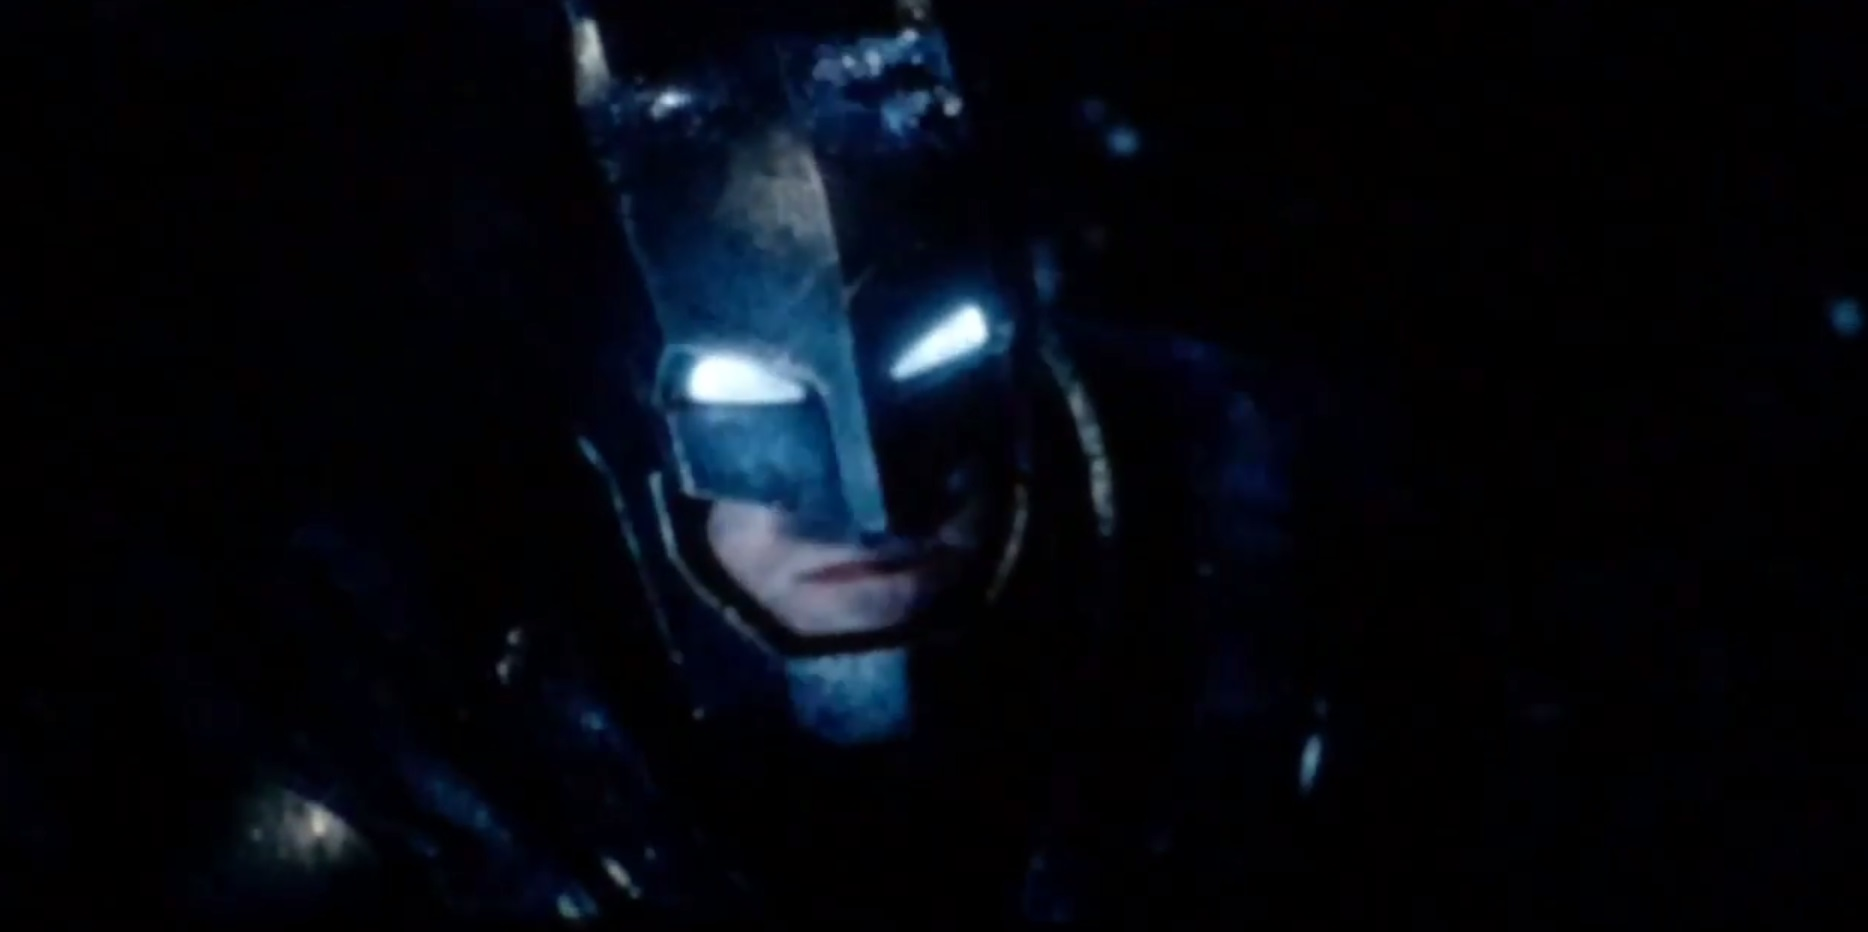 Another Leaked Batman Vs. Superman Trailer From The CONAN …